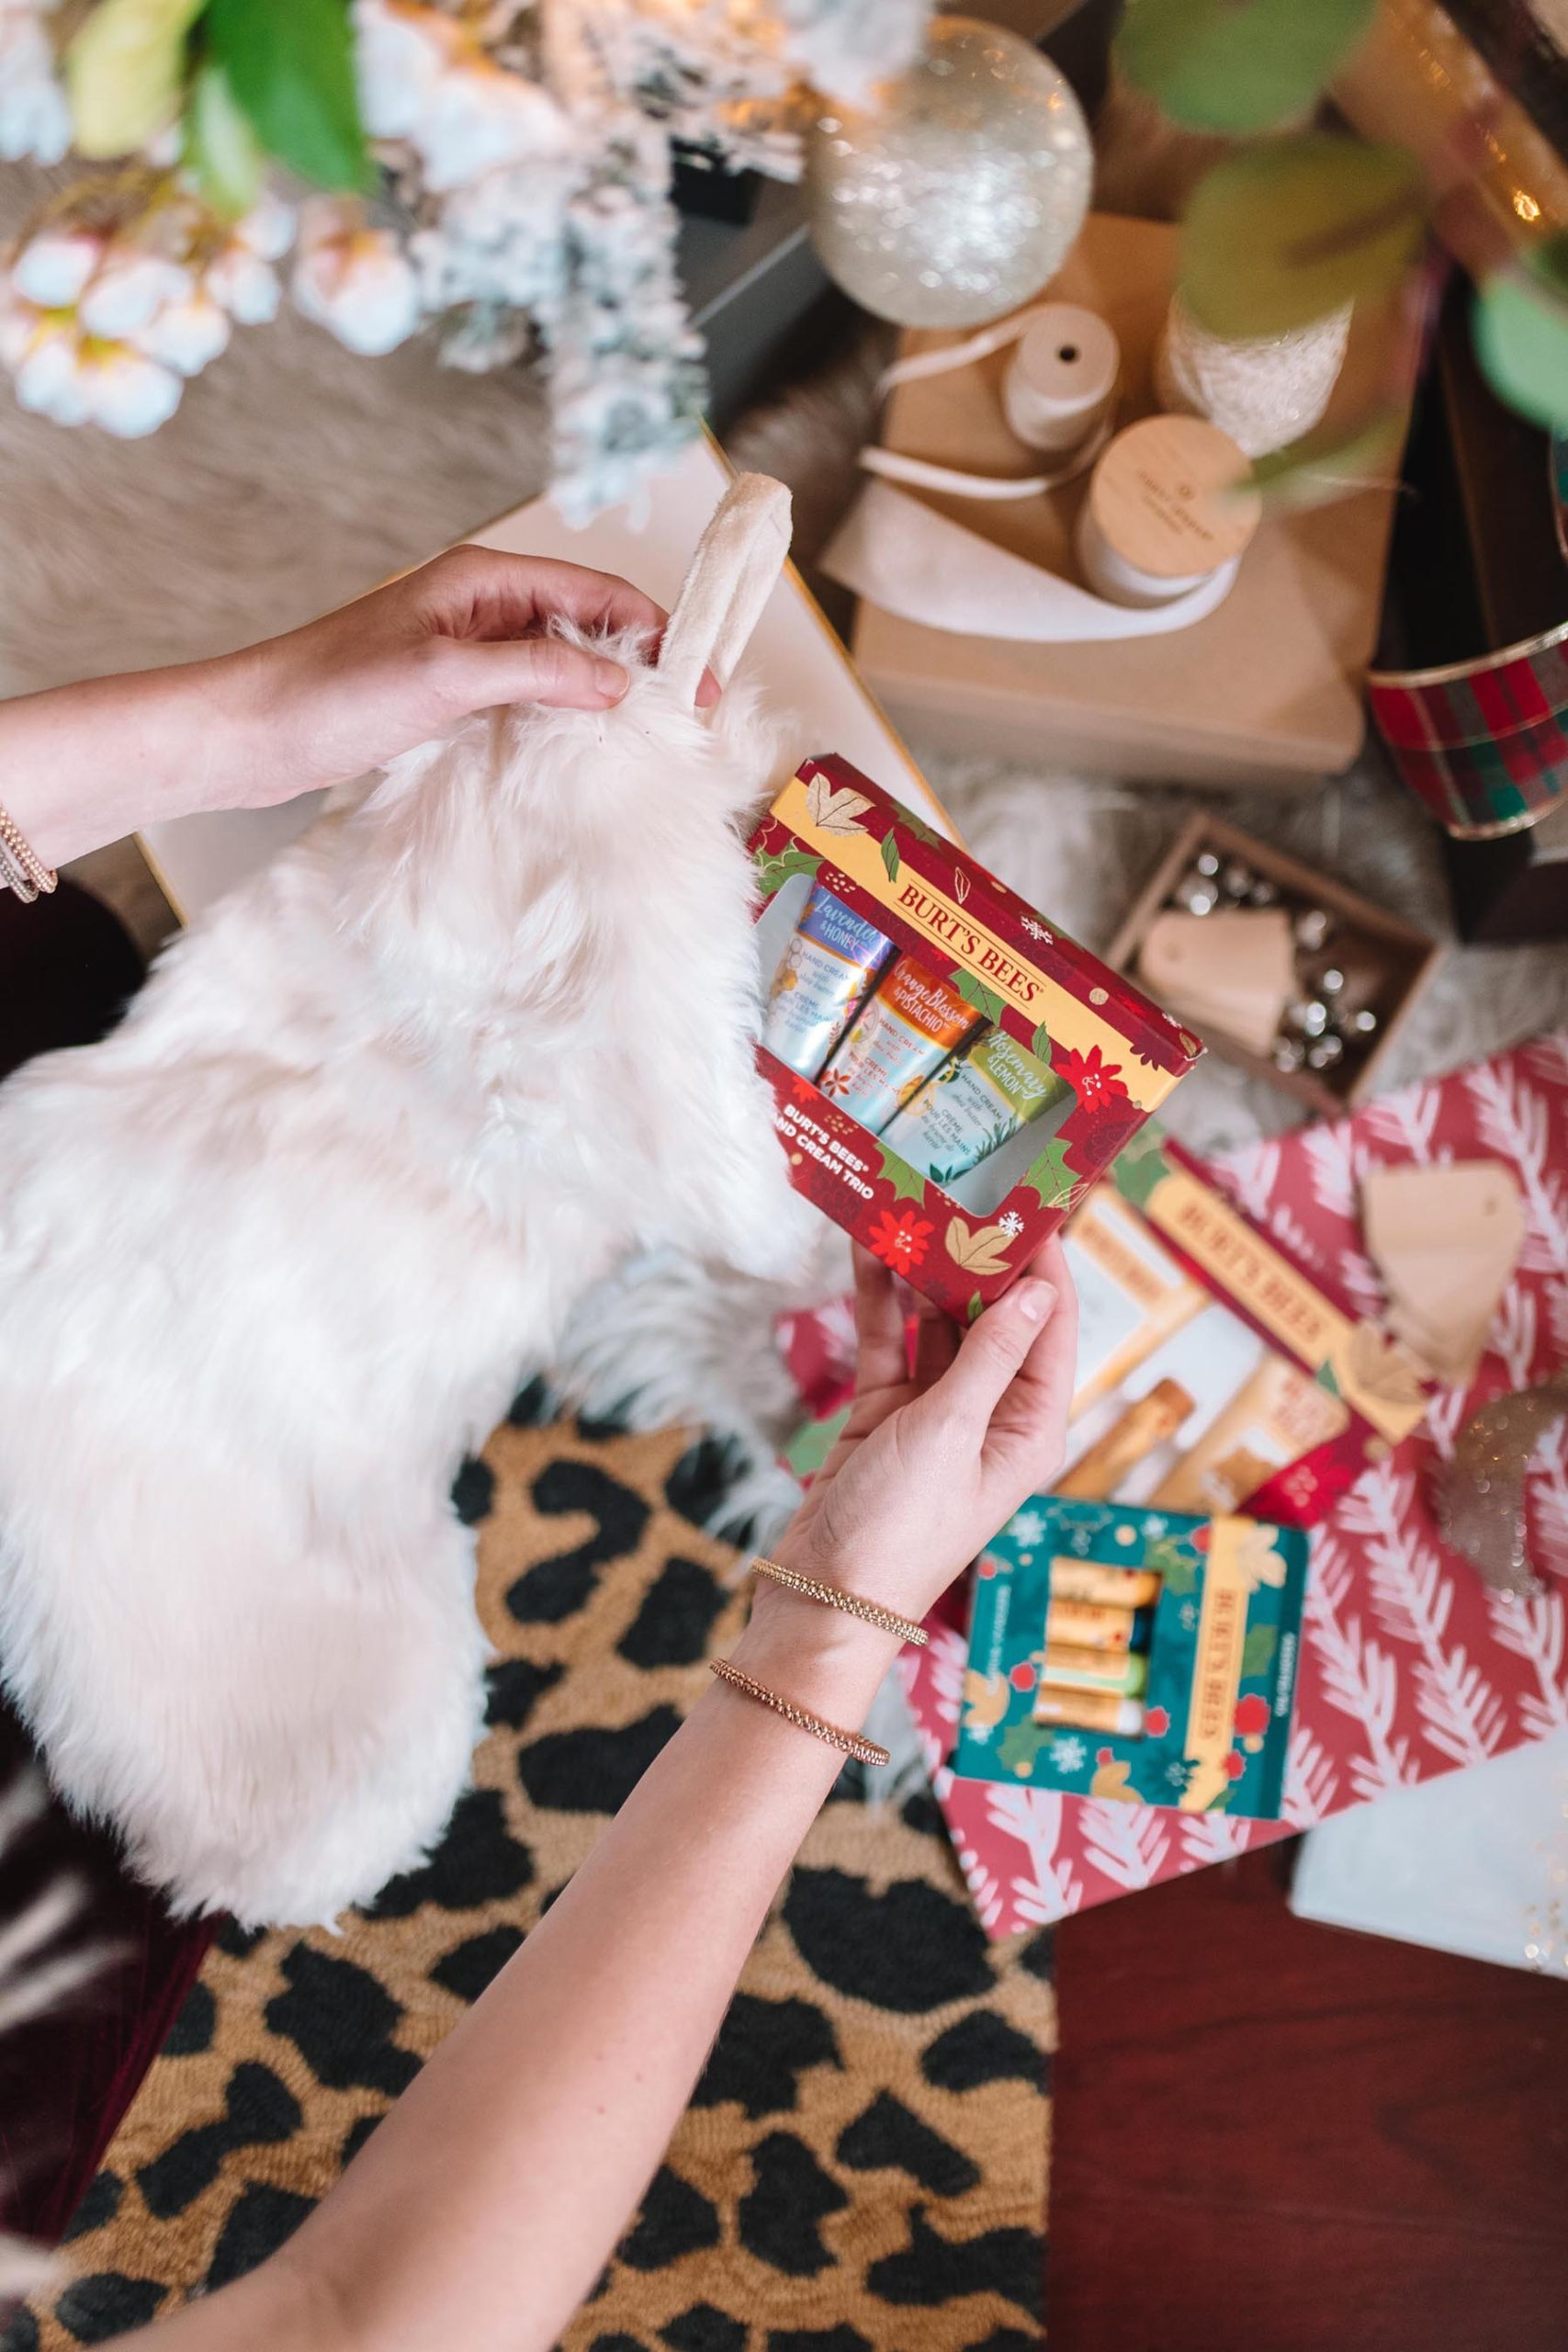 Holiday Sets Under $15 by Burt's Bees from Walmart